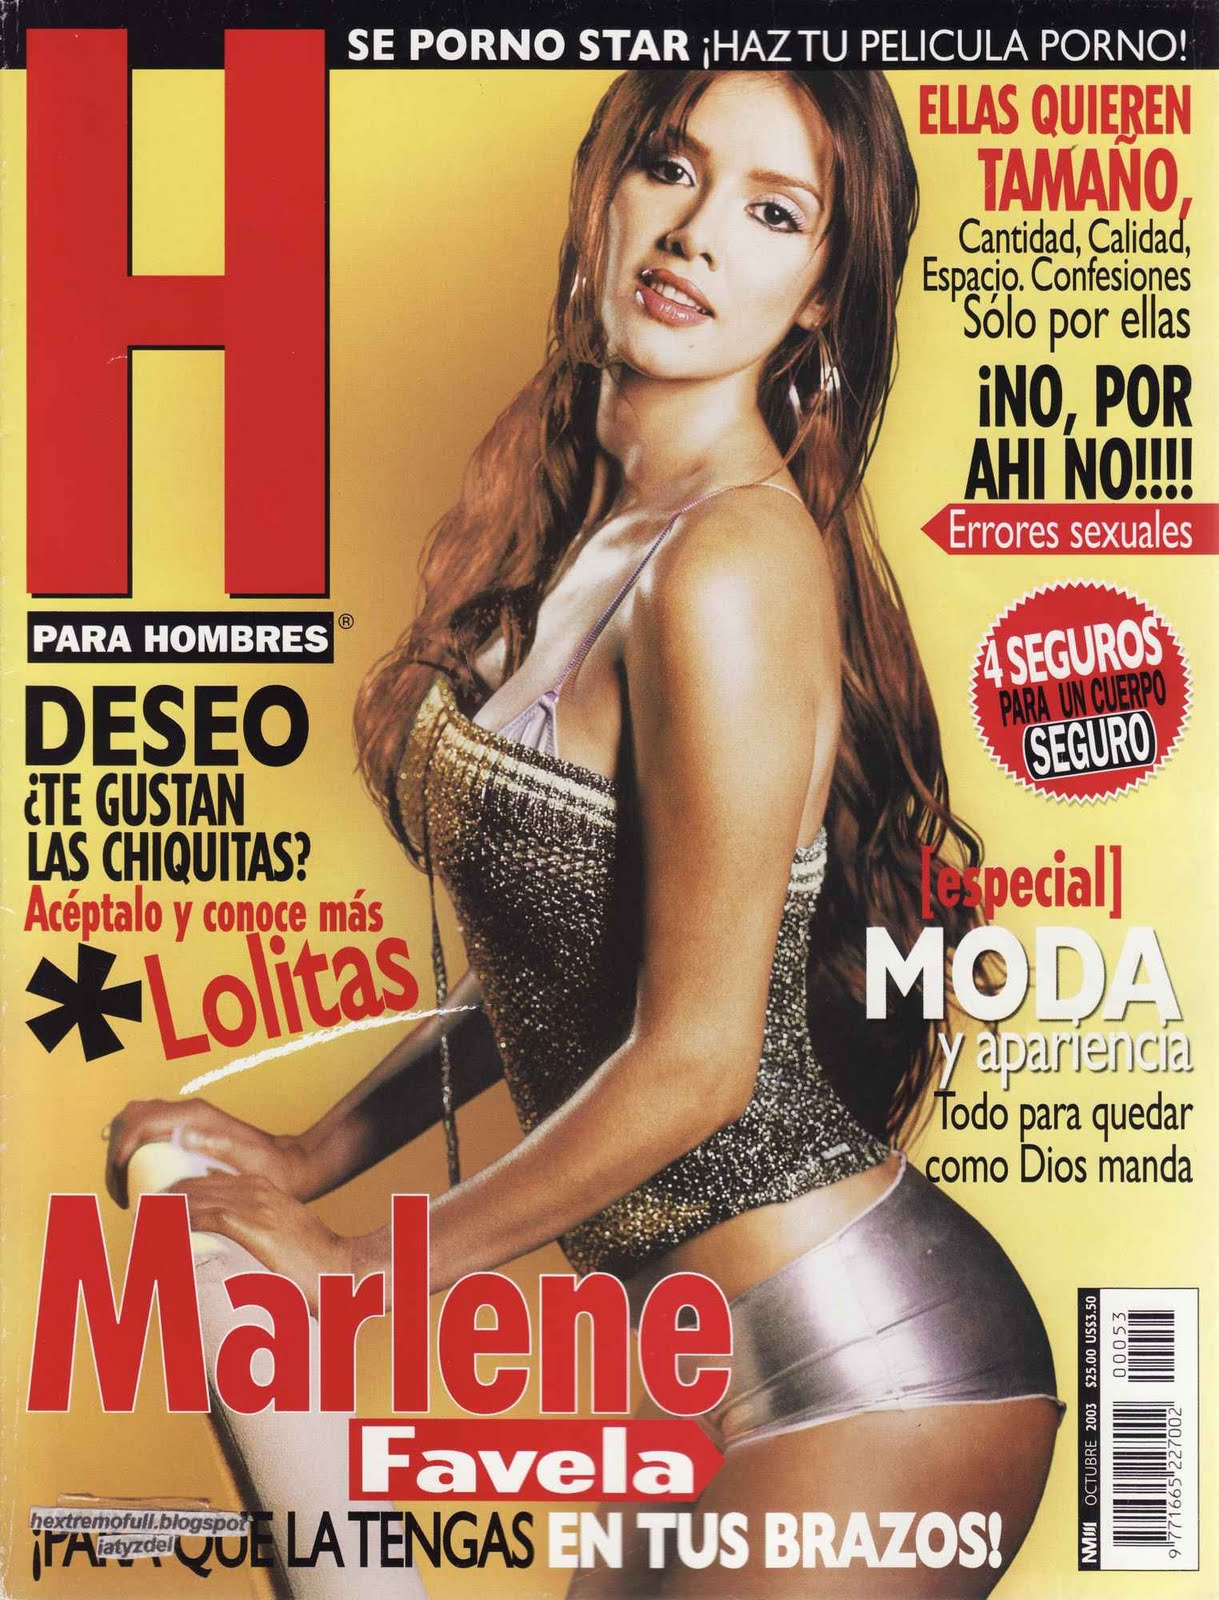 Think, that Marlene favela revista h consider, that